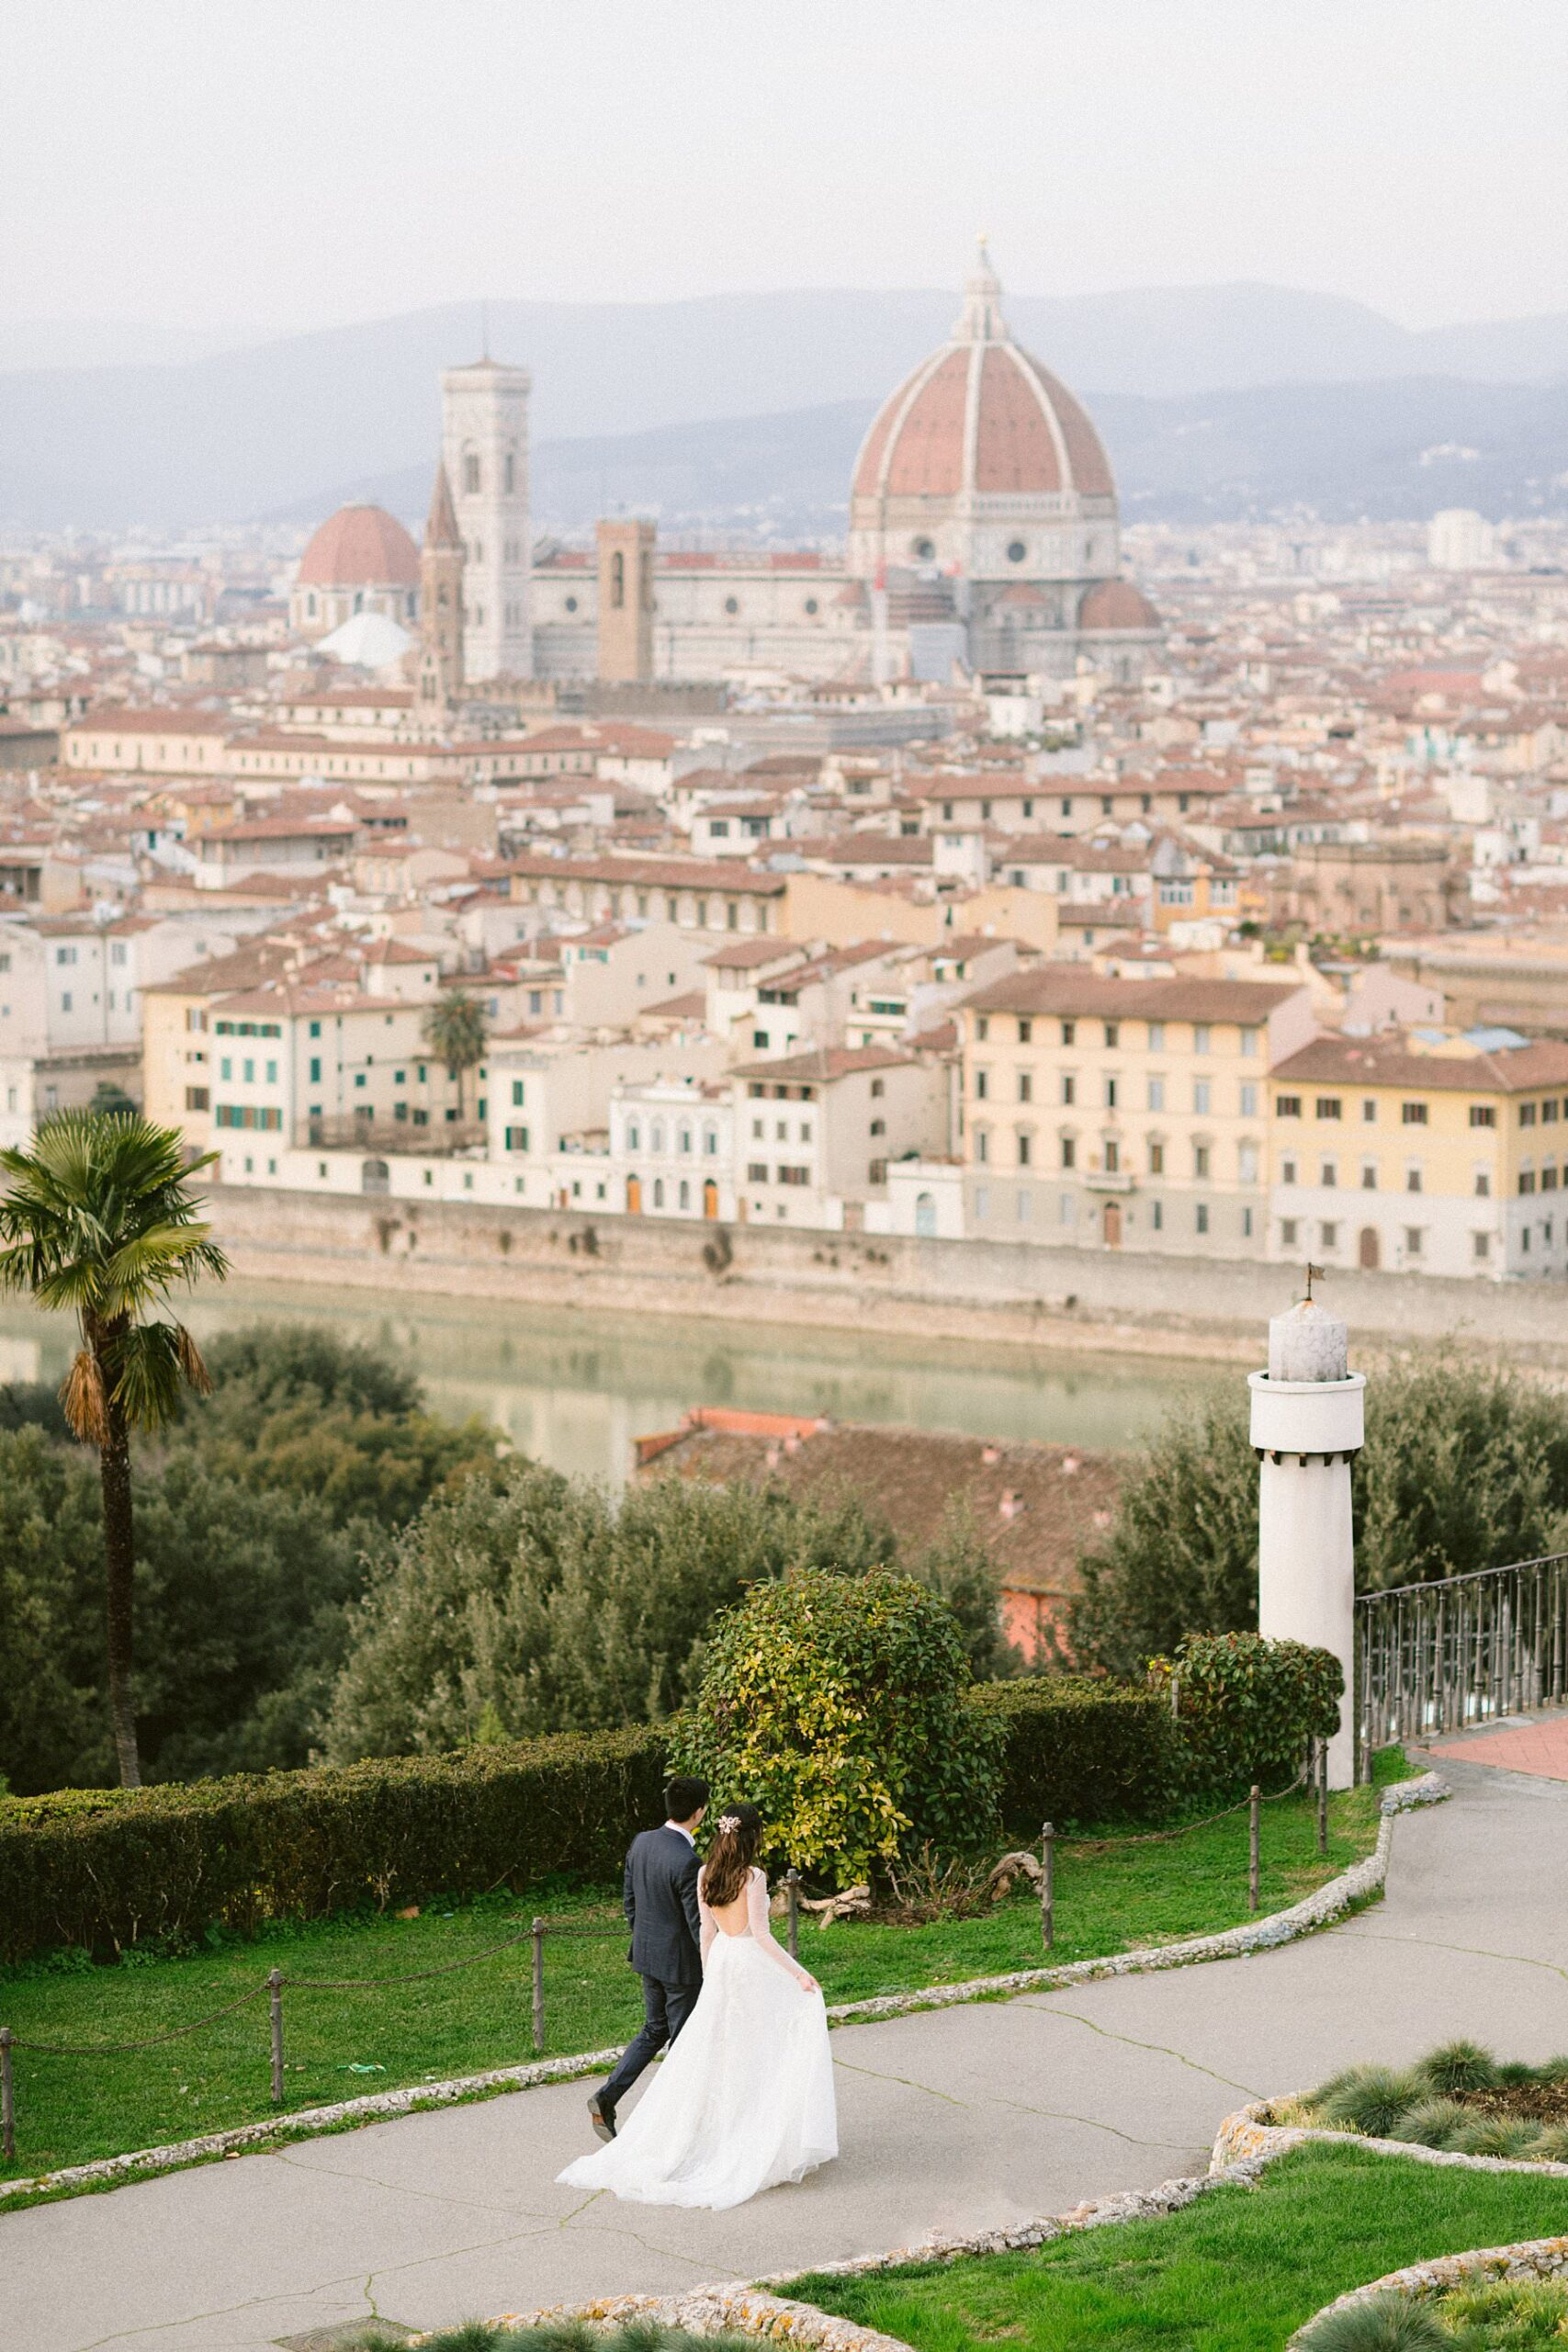 A Florence elegant walk photo shoot at Piazzale Michelangelo during covid-19 pandemic